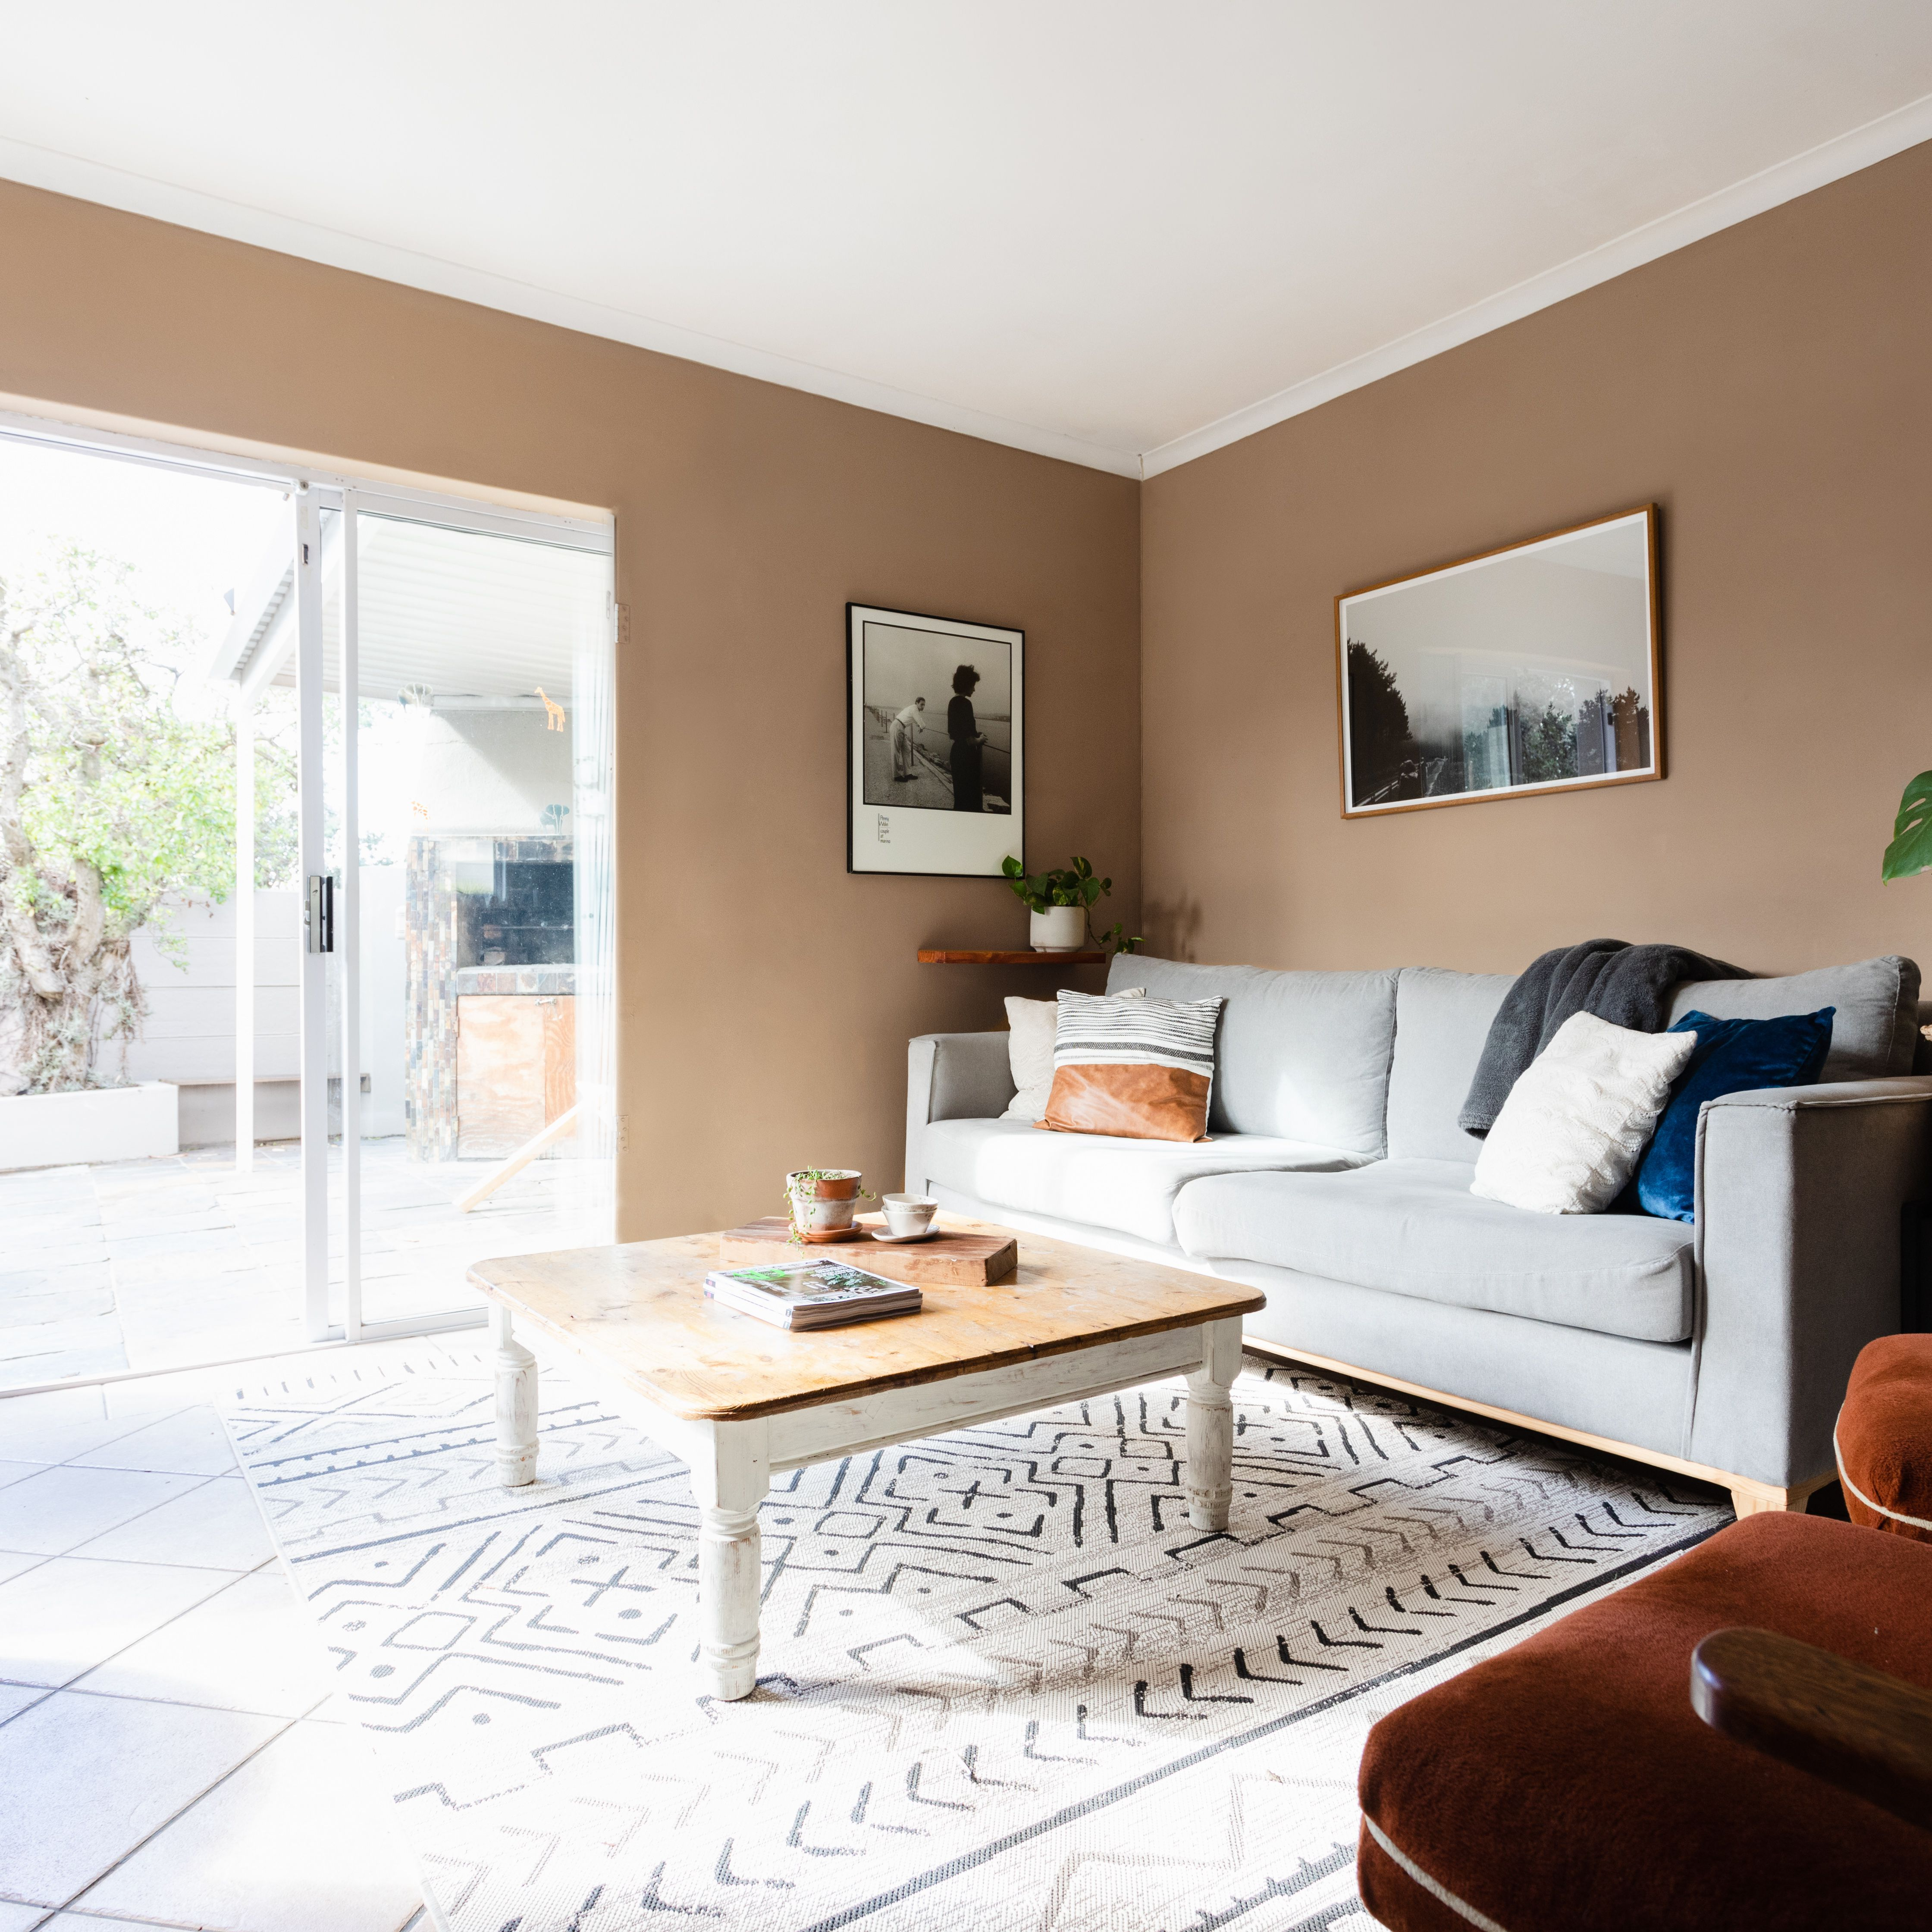 10 Best Taupe Paint Colors, Brown Colors For Living Room